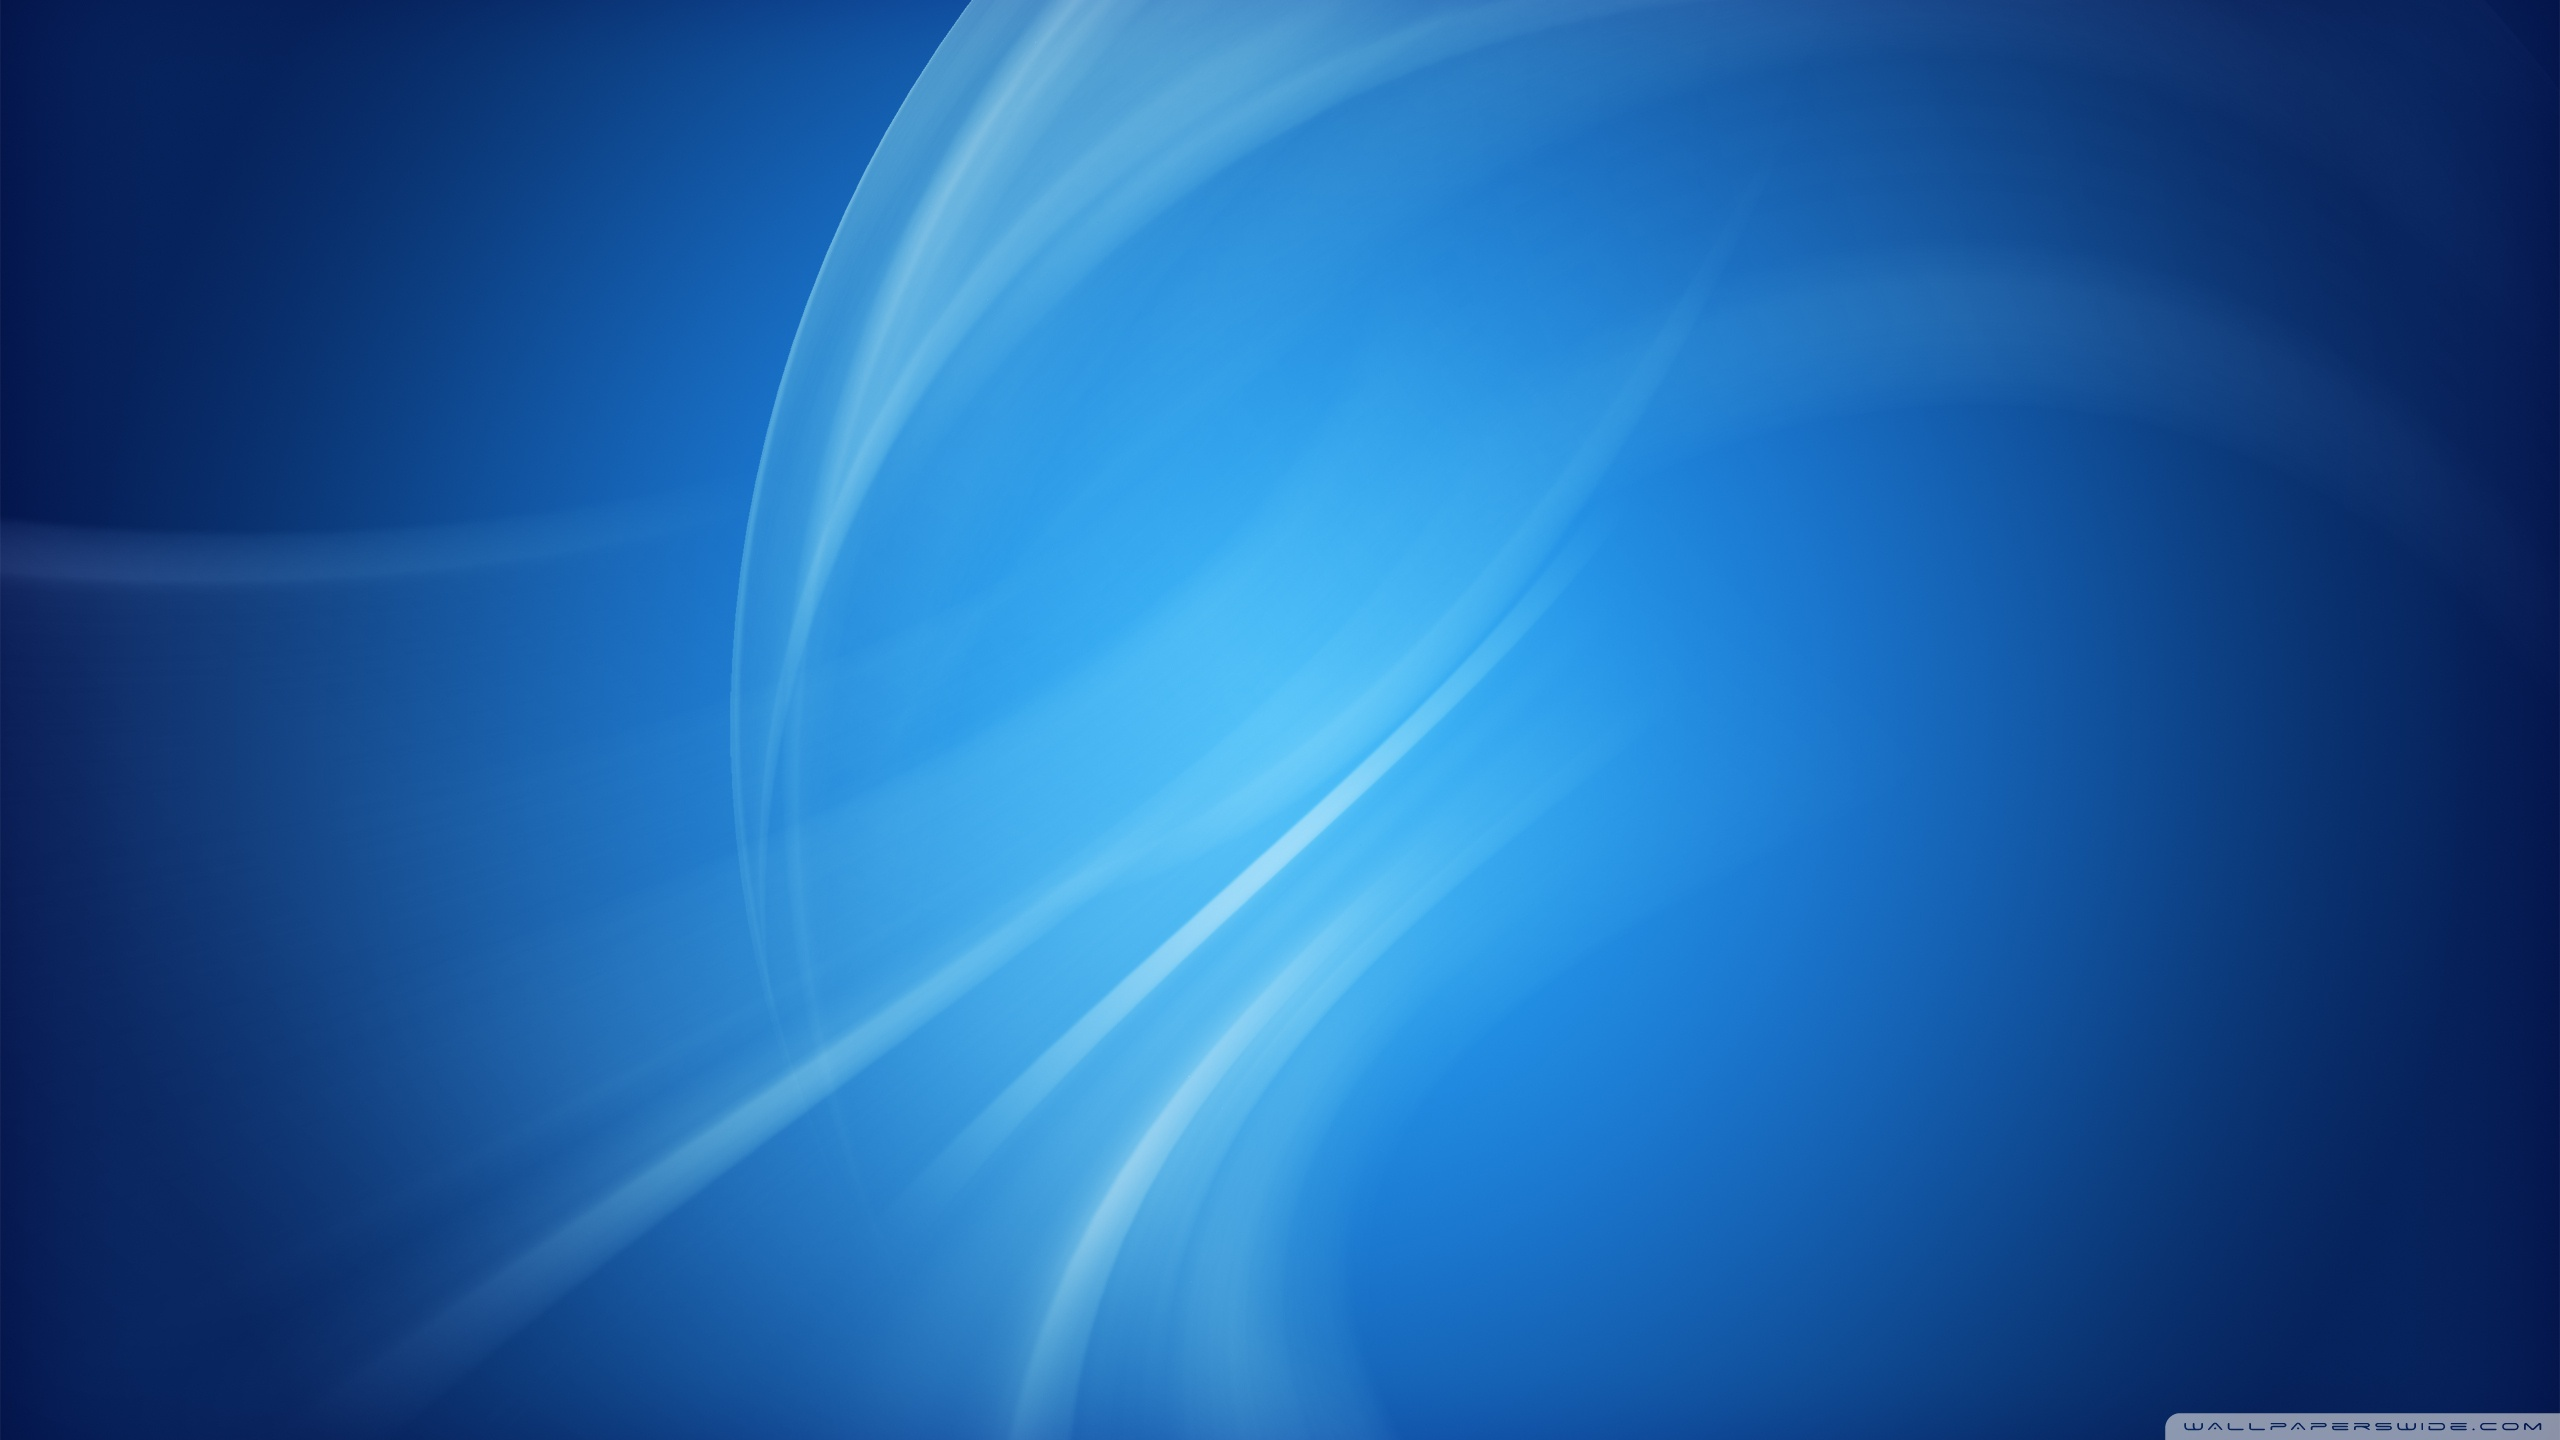 Wallpaper With Blue Background